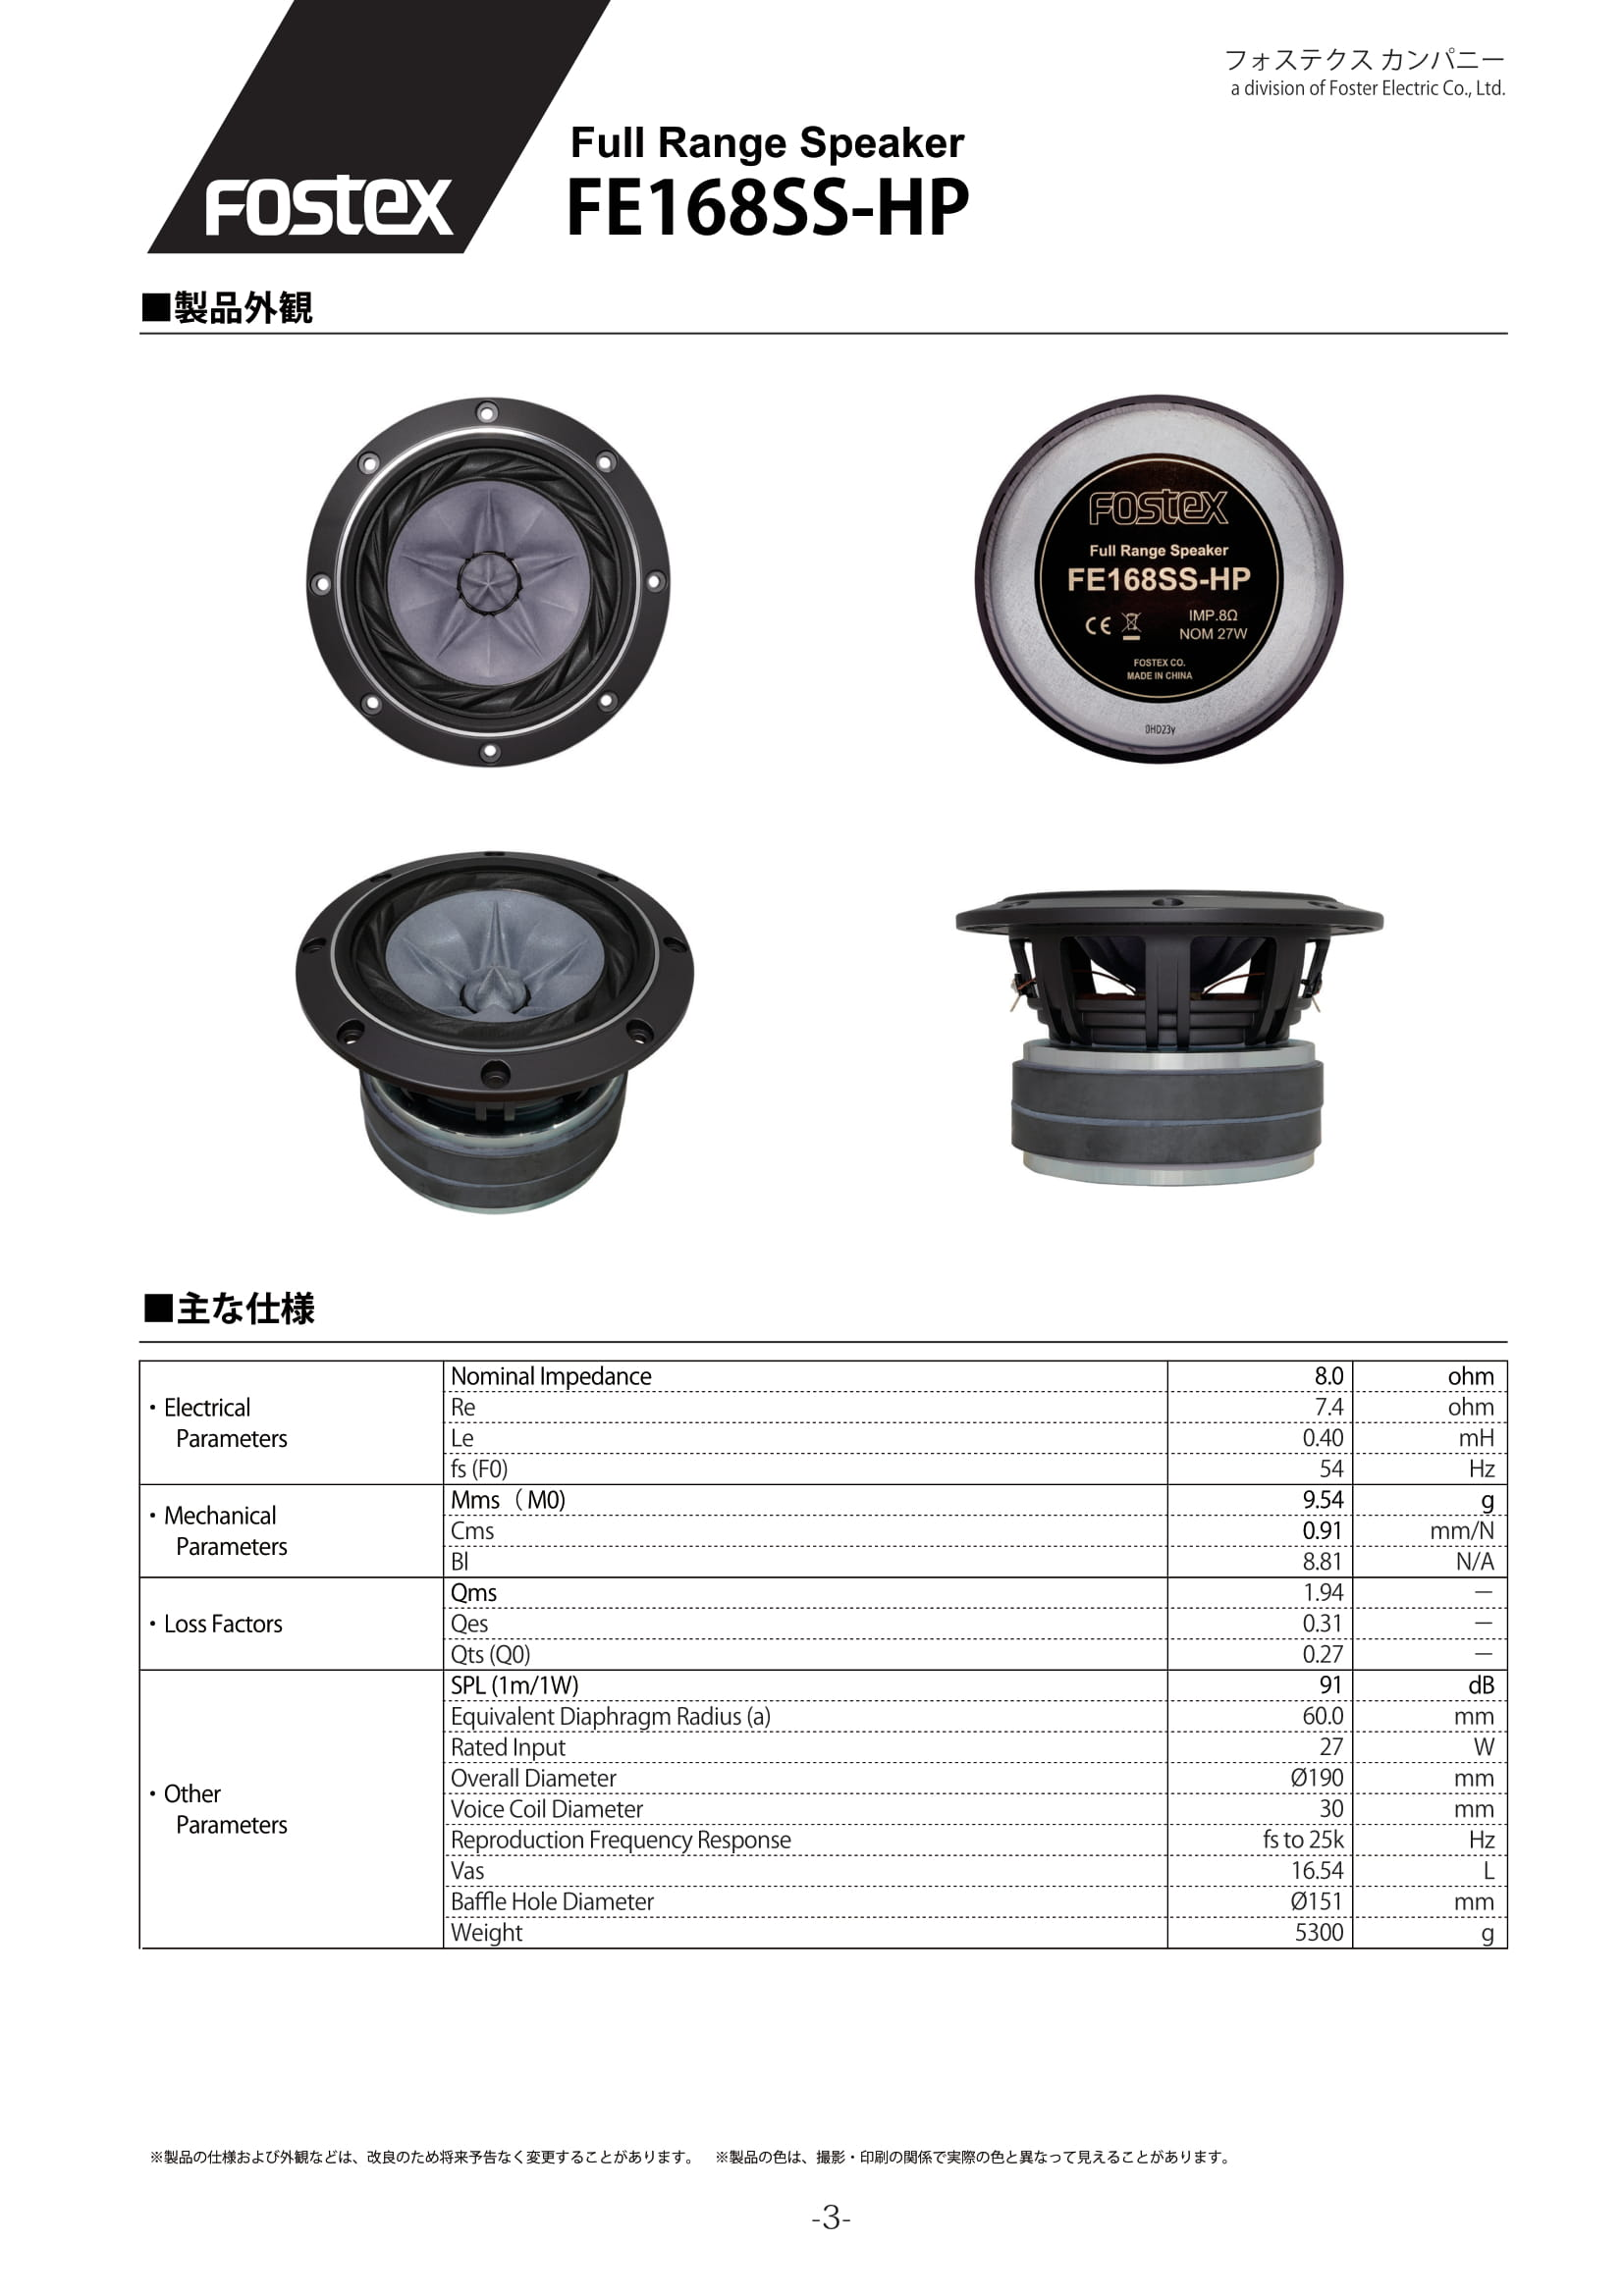 210210 Fostex_FE168SS-HP_T90A-SE_News_Release-3